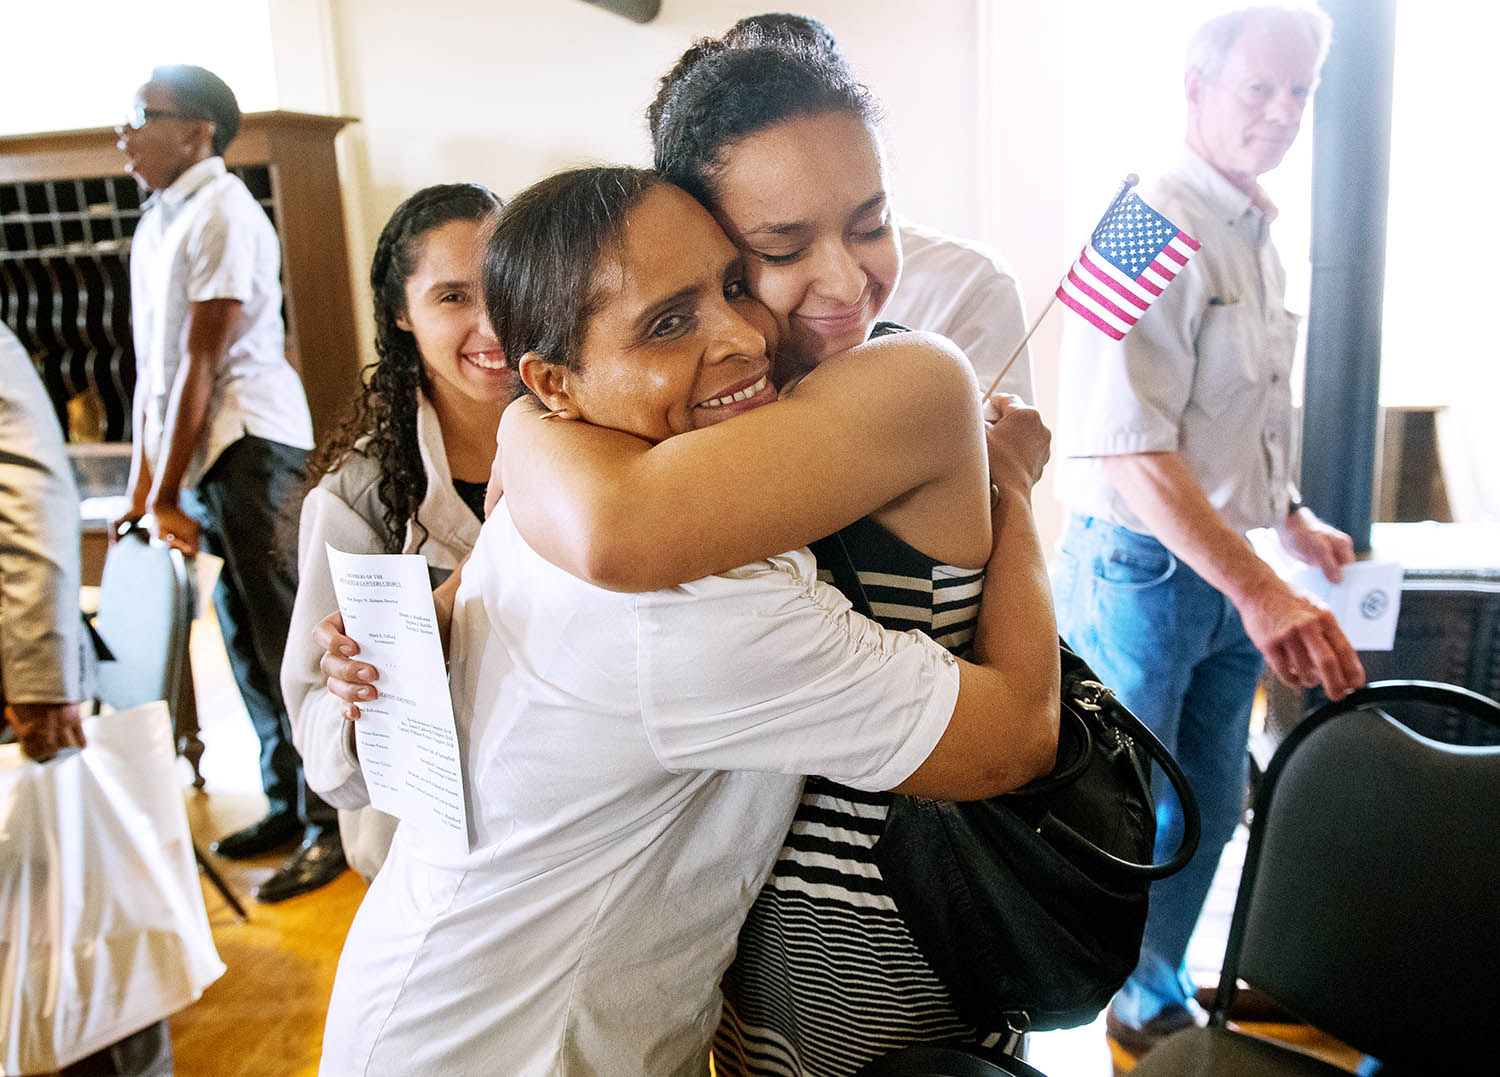 Divina Rosa Kluge is embraced by her daughter Divina after she received her citizenship during a naturalization ceremony at the Old State Capitol Friday, June 14, 2019. [Ted Schurter/The State Journal-Register]